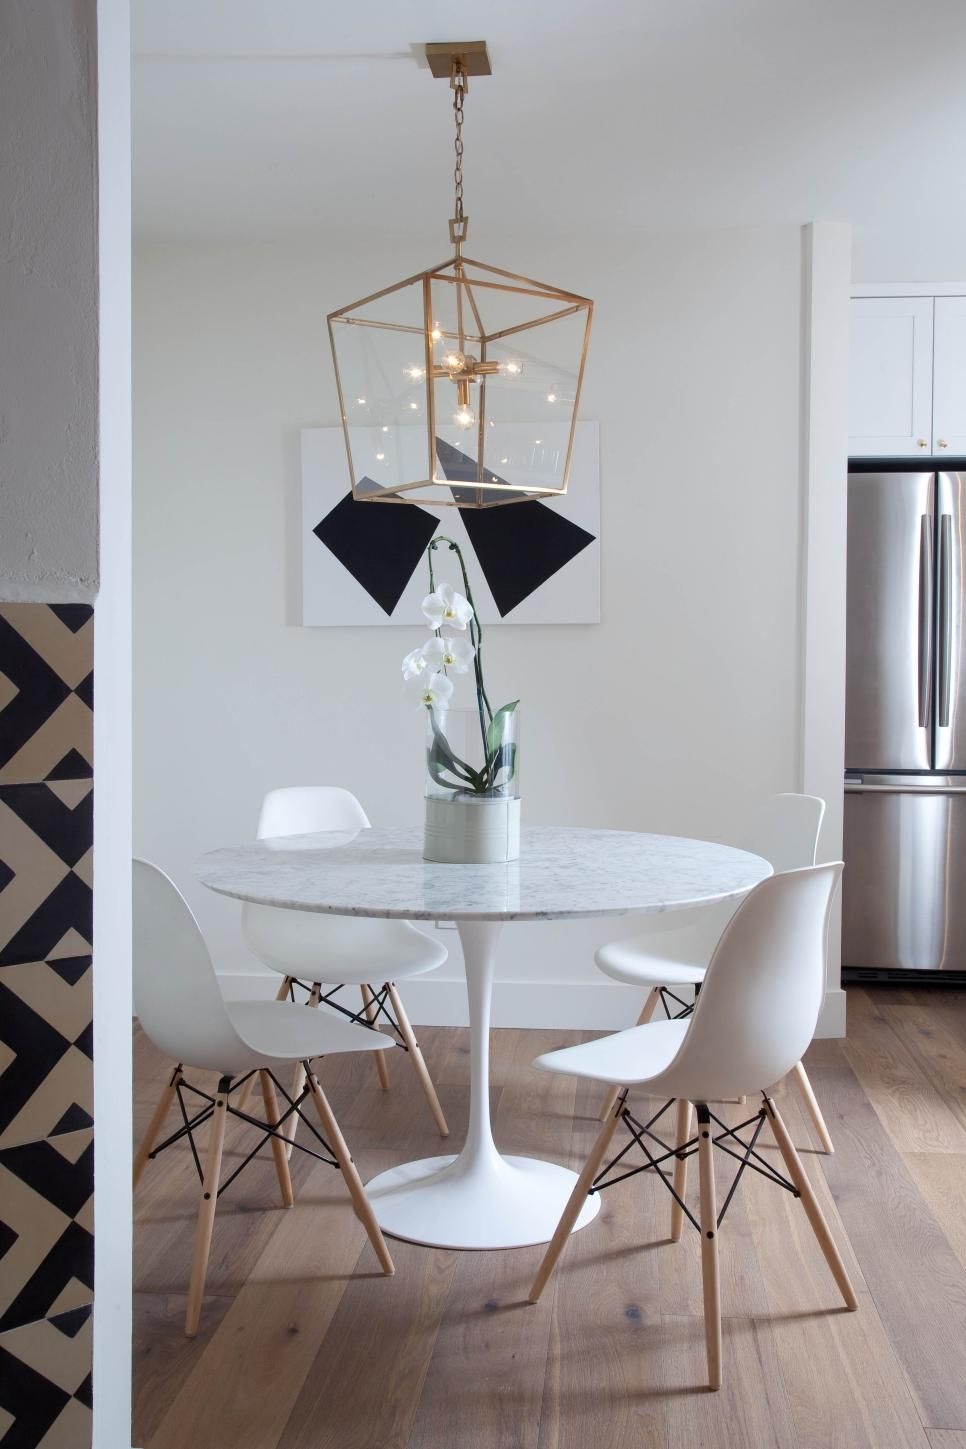 White Eames Style Dining Chairs Surround The Contemporary Round Dining Table  In This Minimalist Dining